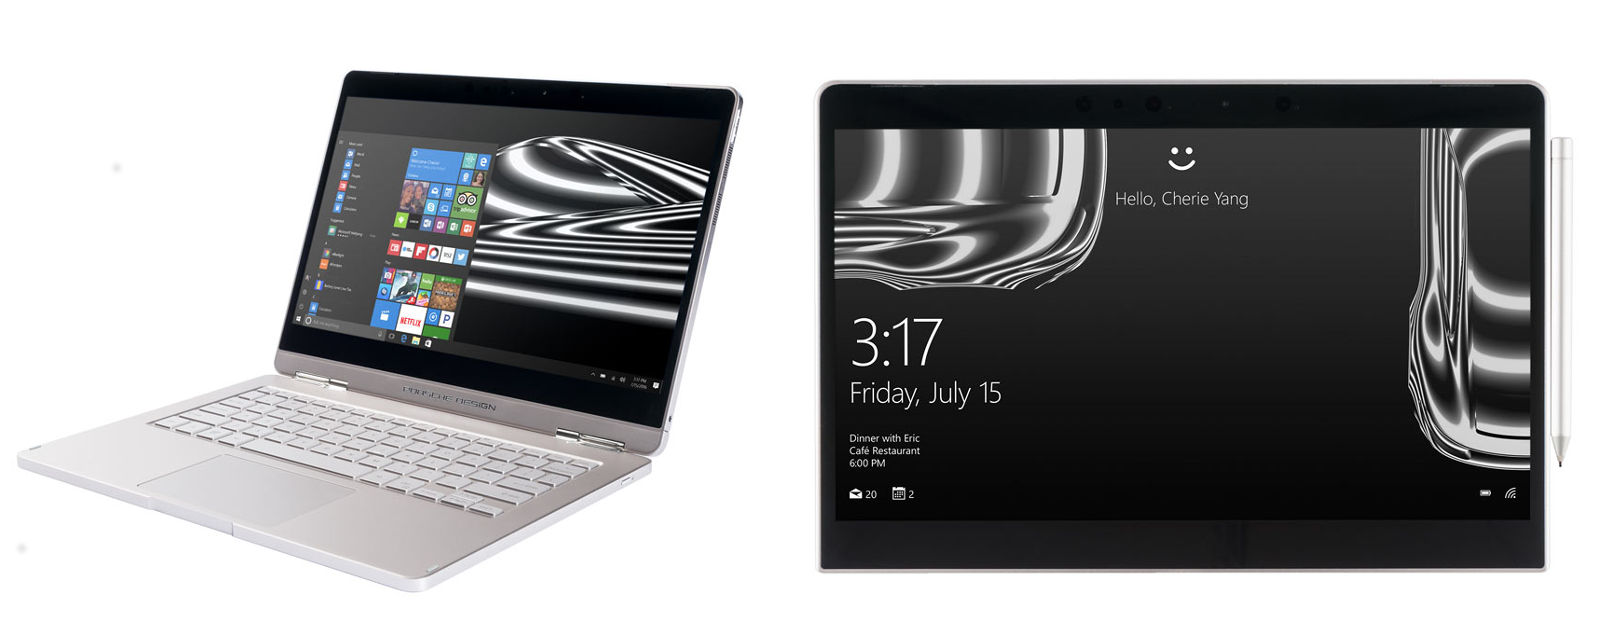 Porsche Design anuncia su propio convertible con Windows